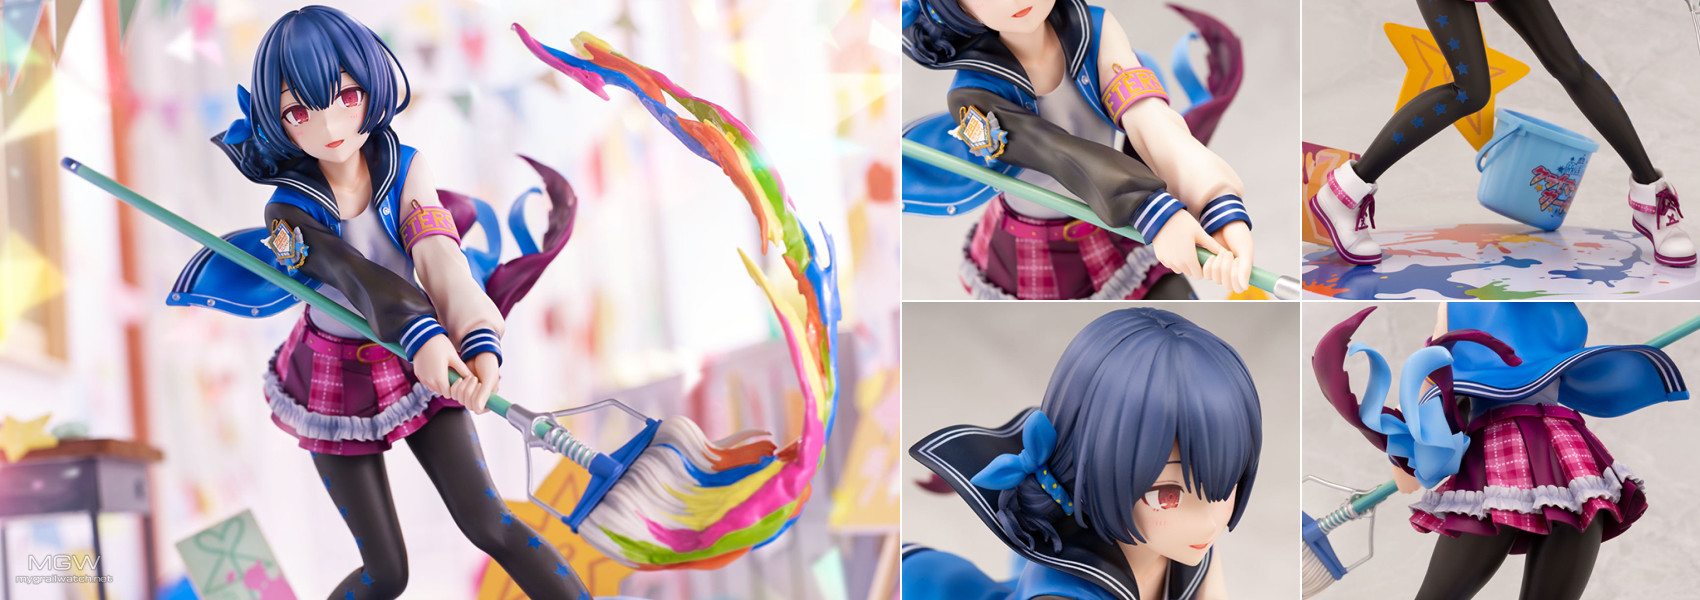 Rinze Morino Brave Hero Jersey ver. by AmiAmi from THE iDOLM@STER SHINY COLORS